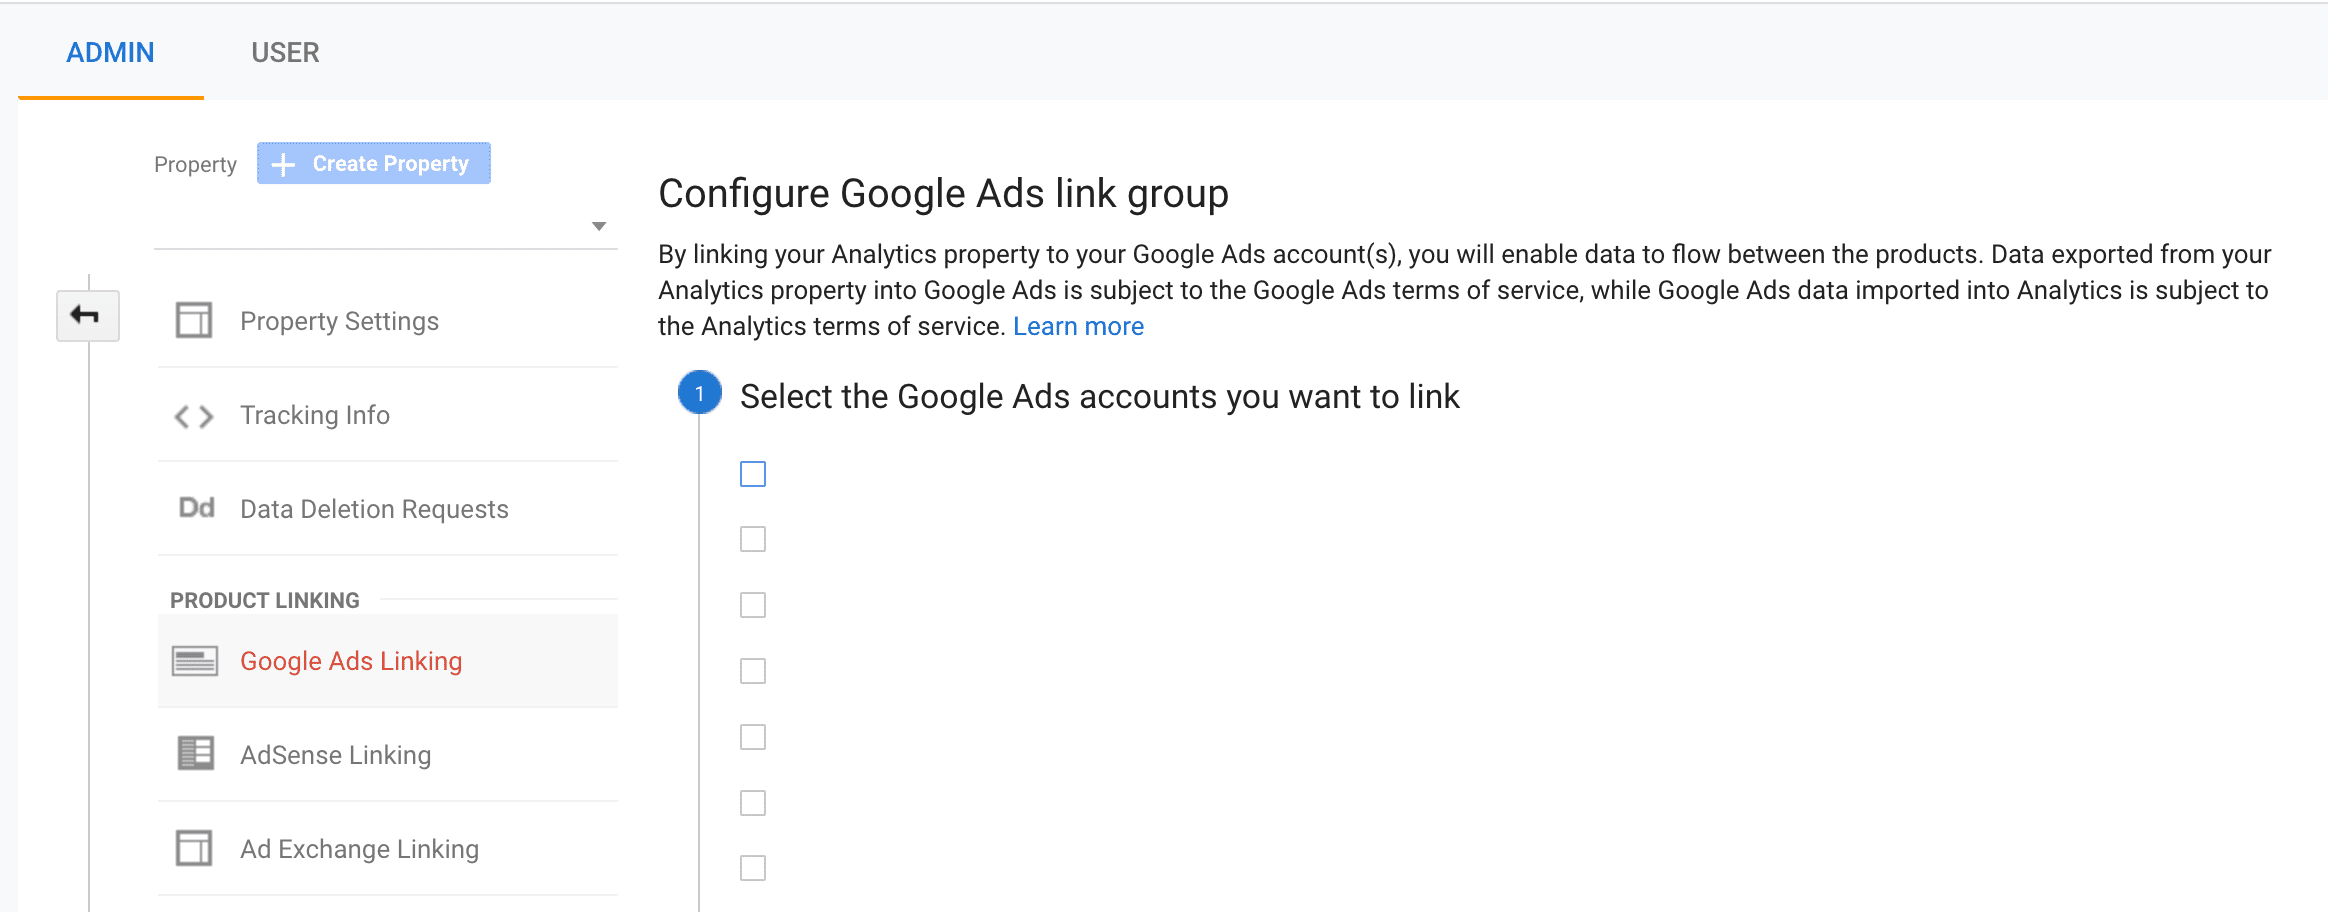 Google Ads Account Link in Google Analytics Setup